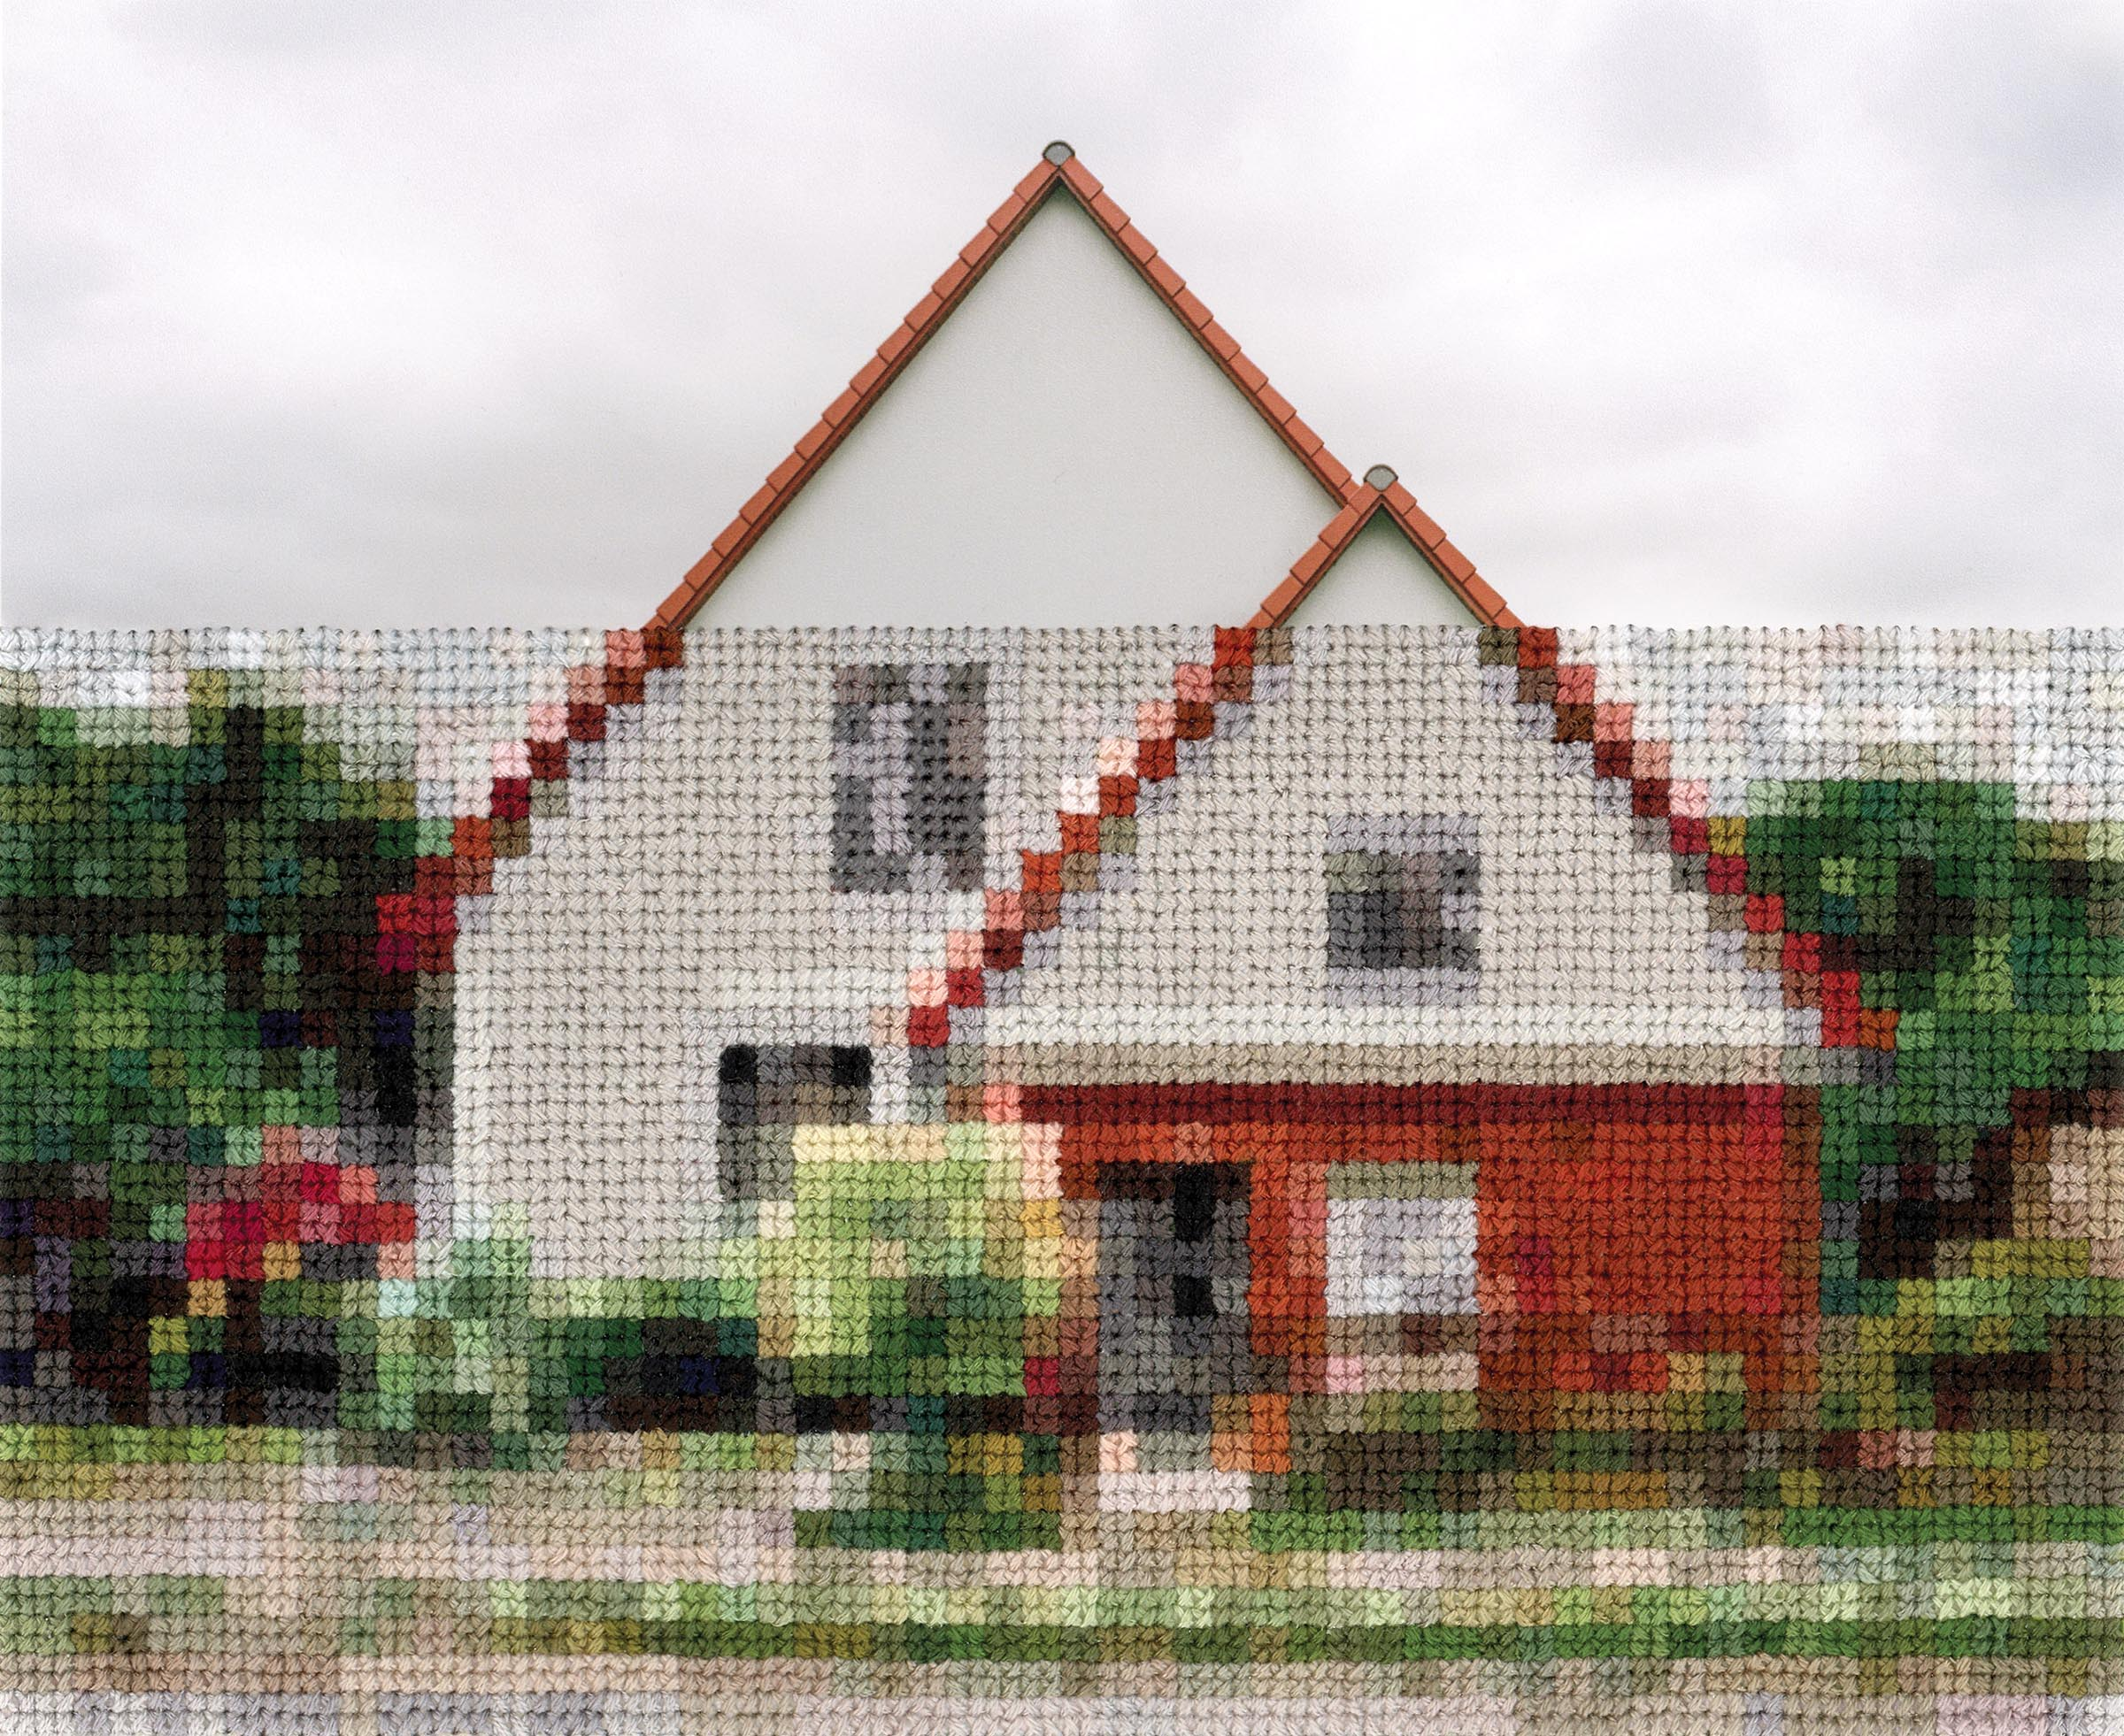 Diane Meyer , House, Wall Area Near Lichterfelde-Sud, Hand Sewn Archival Ink Jet Print, 5 x 7 inches, 2017